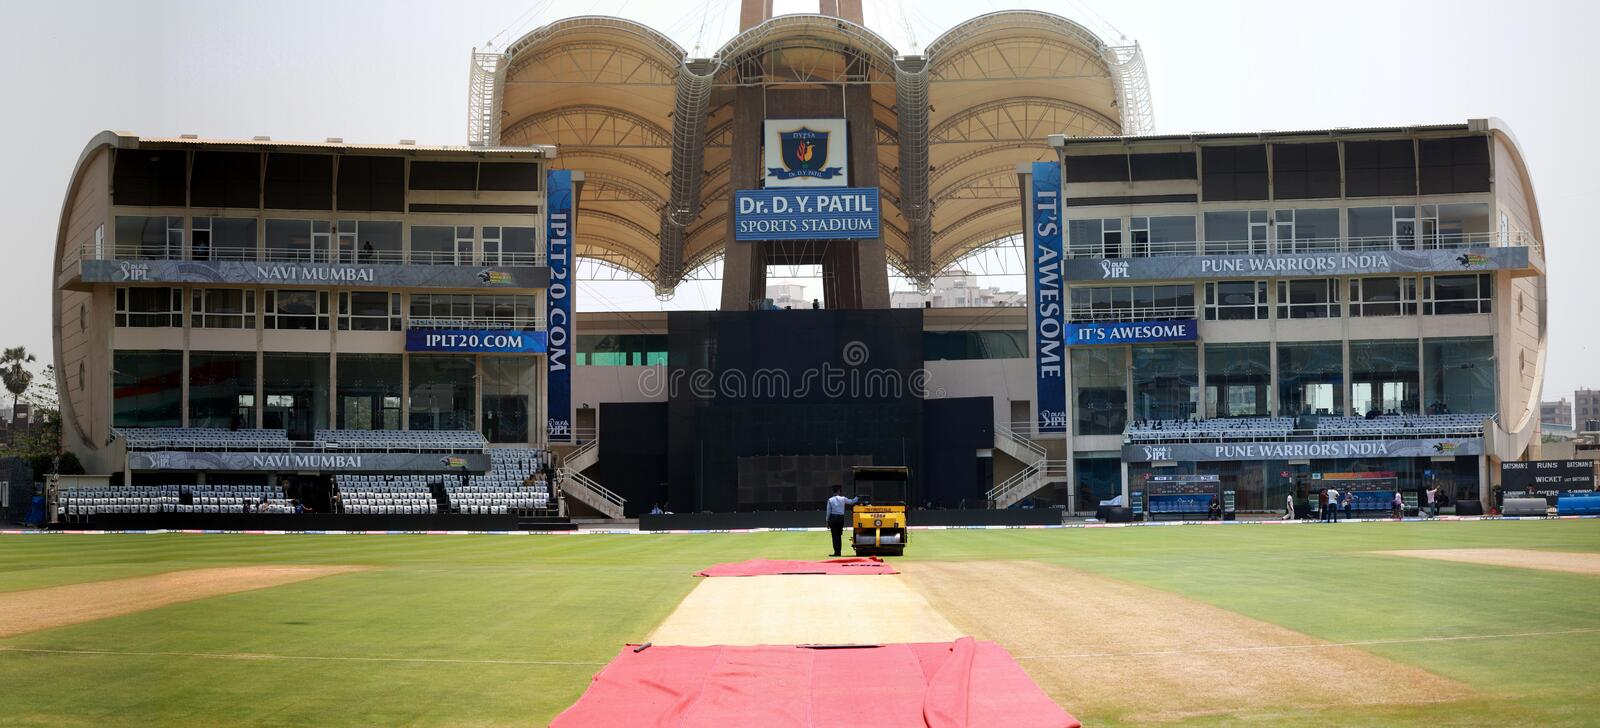 DY Patil Cricket Stadium royalty free stock image